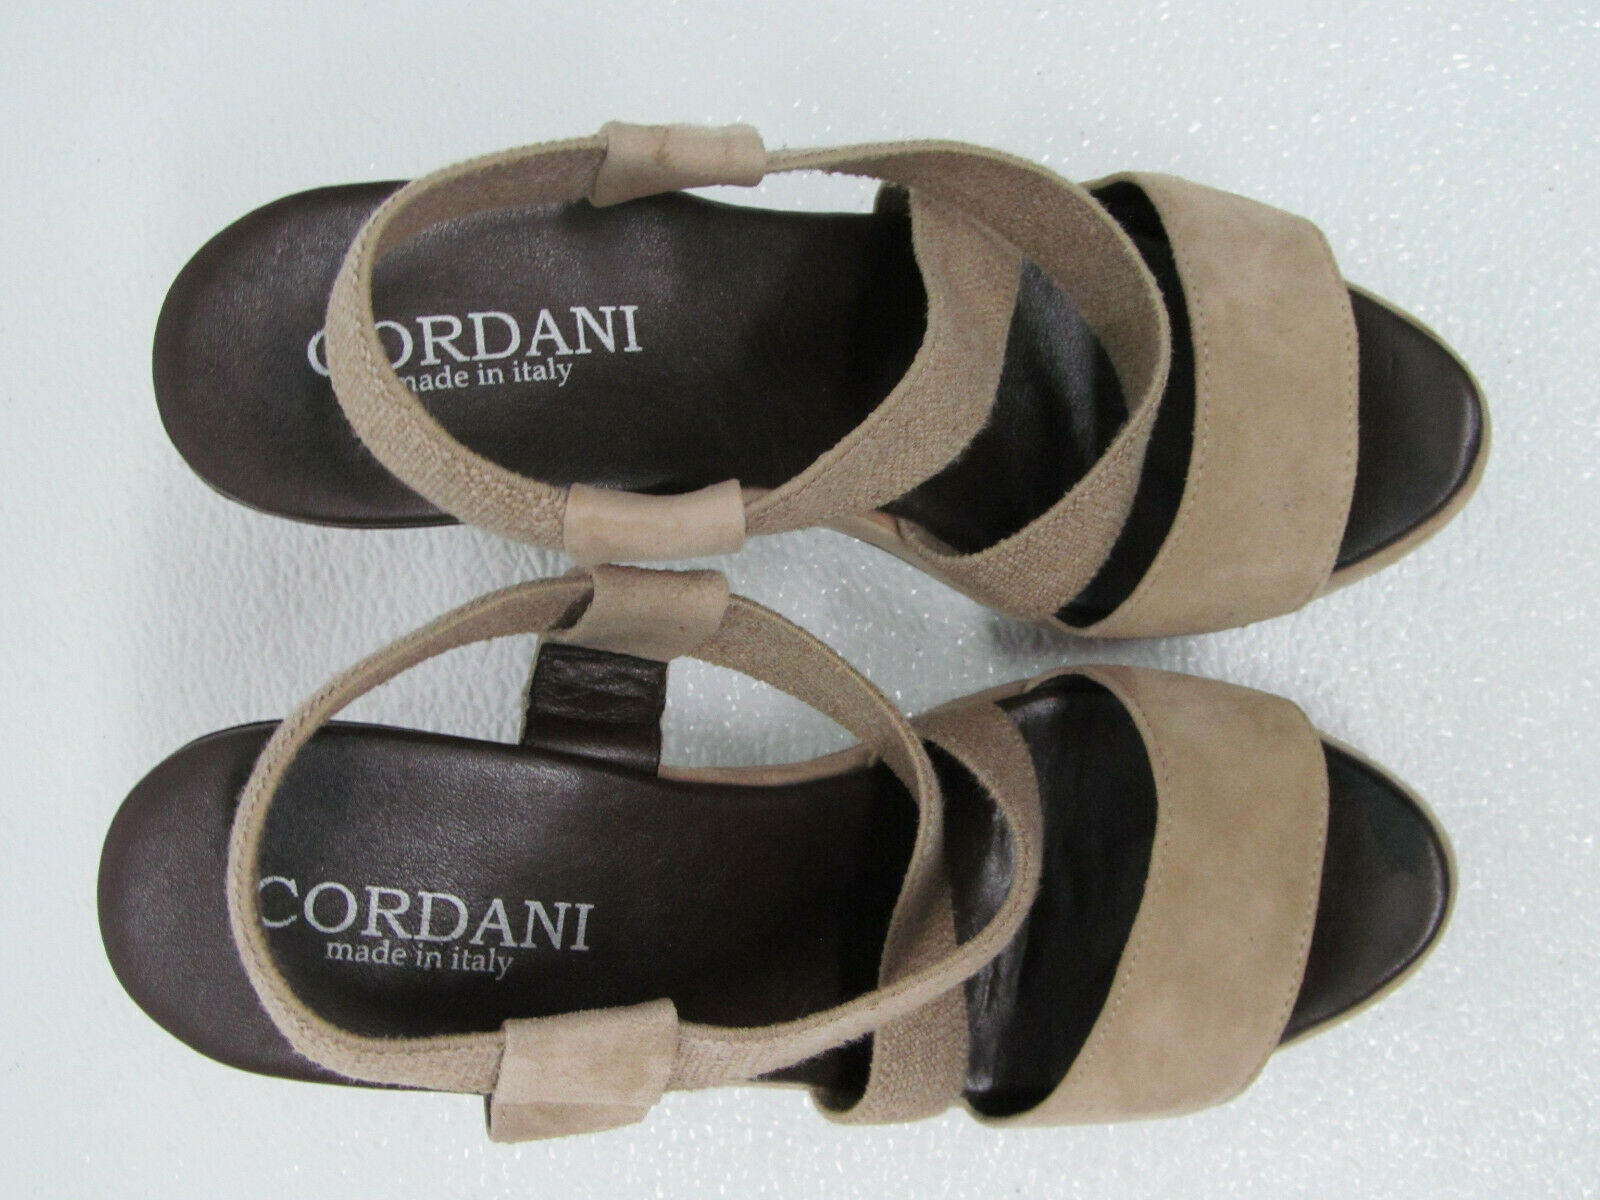 CORDANI MADE Größe IN ITALY CANVAS LEATHER SANDALS PLATFORM HEELS Größe MADE damen 8 39 192711